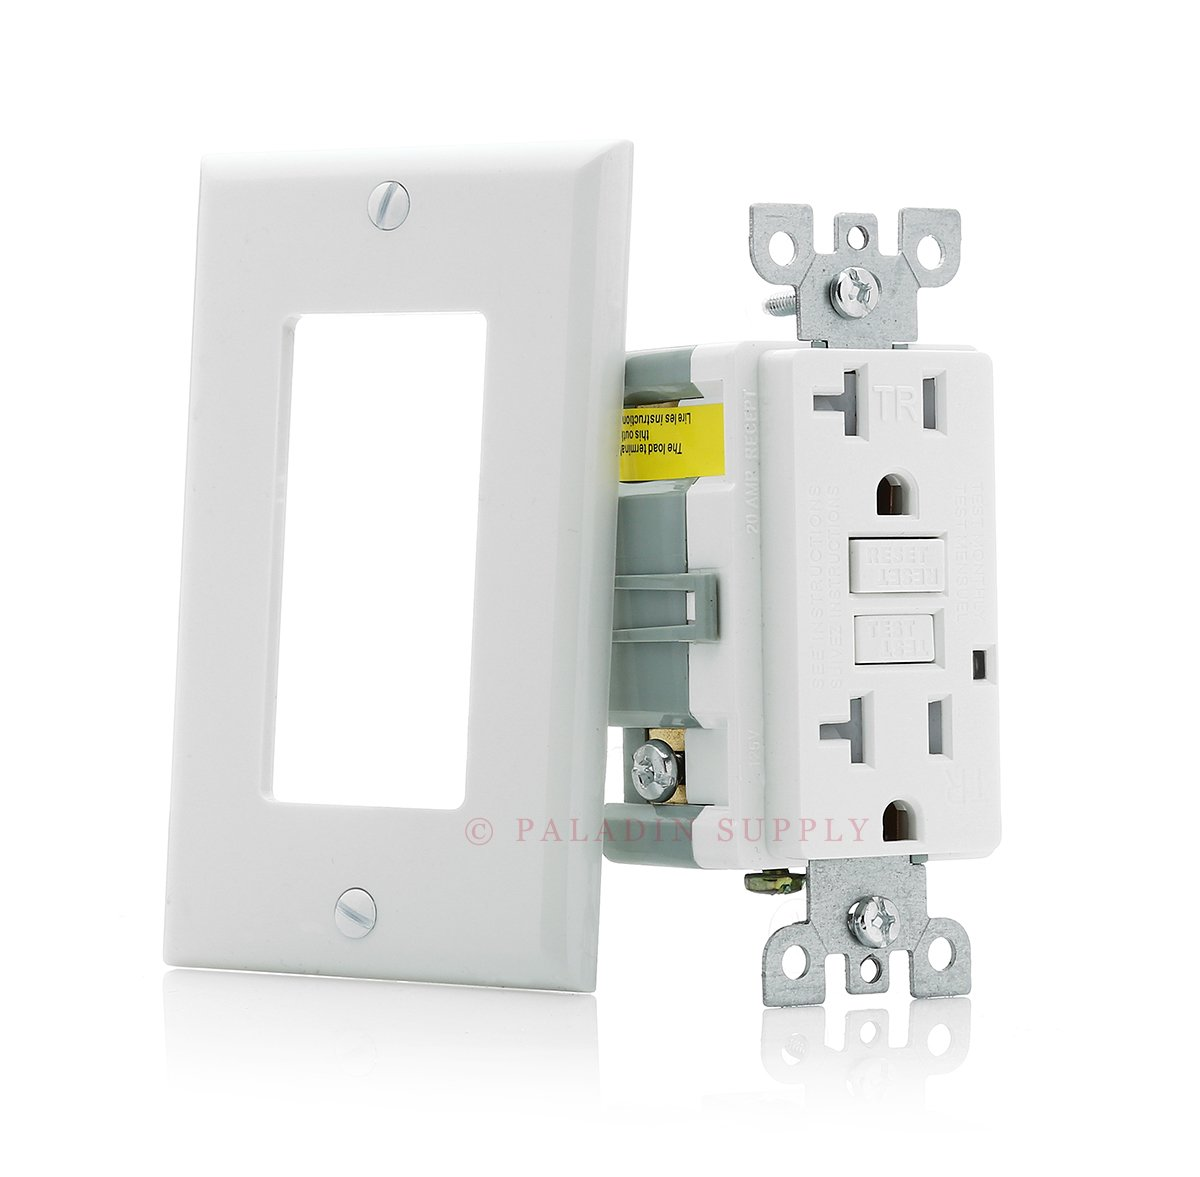 Paladin 20A Tamper Resistant GFCI GFI Receptacle Outlet w/ Wallplate & LED Indicator - UL Certified, White, 20 Amp 125v (1 Pack)